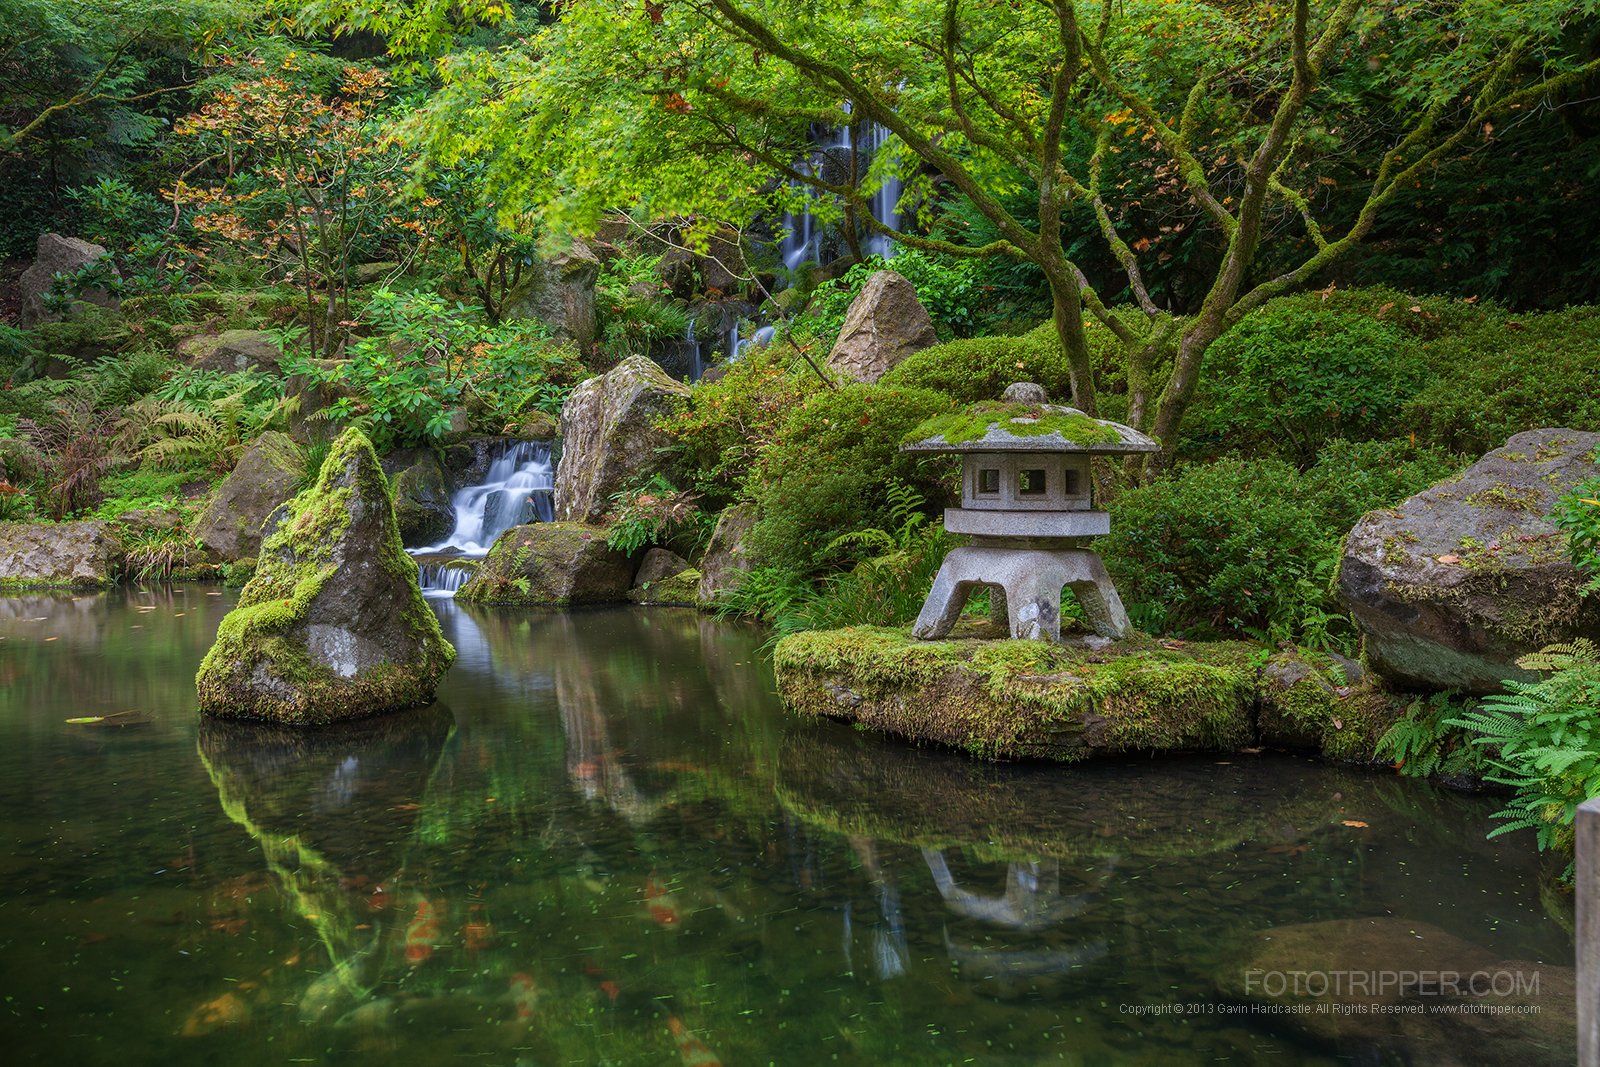 How to shoot portland japanese garden fototripper for Koi pond japan